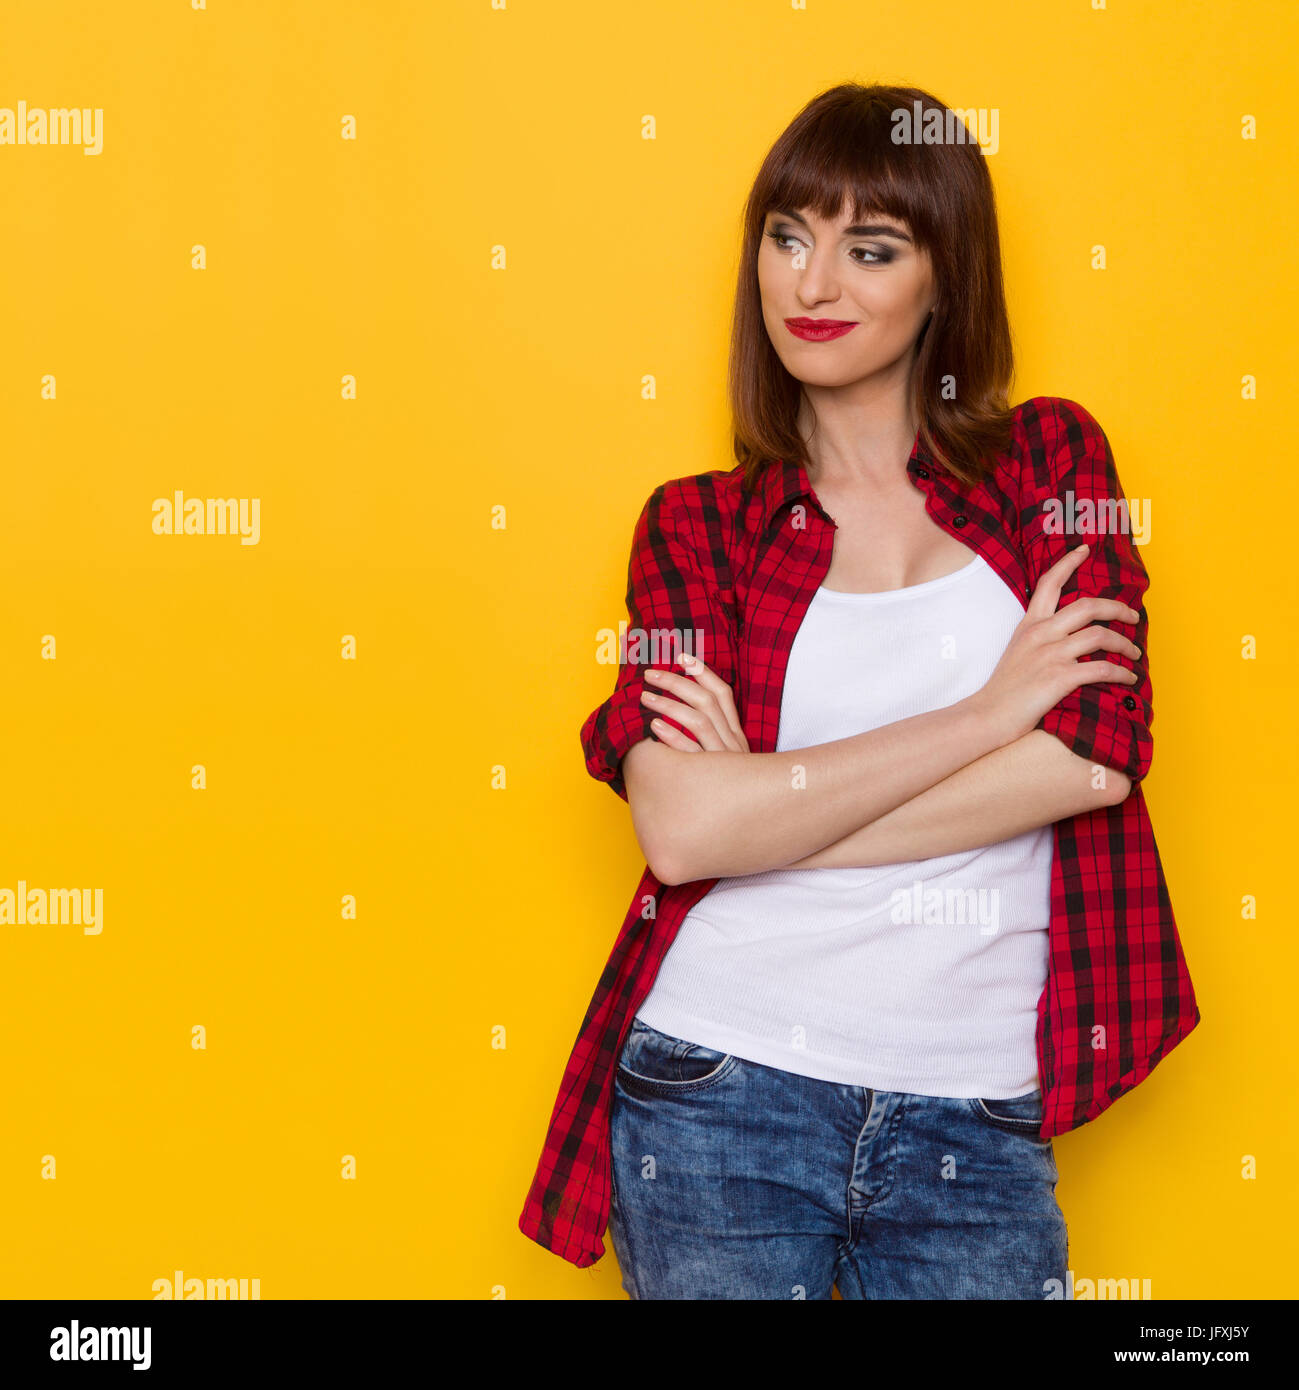 Grimacing young woman in red lumberjack shirt and jeans posing with arms crossed and looking away. Three quarter - Stock Image